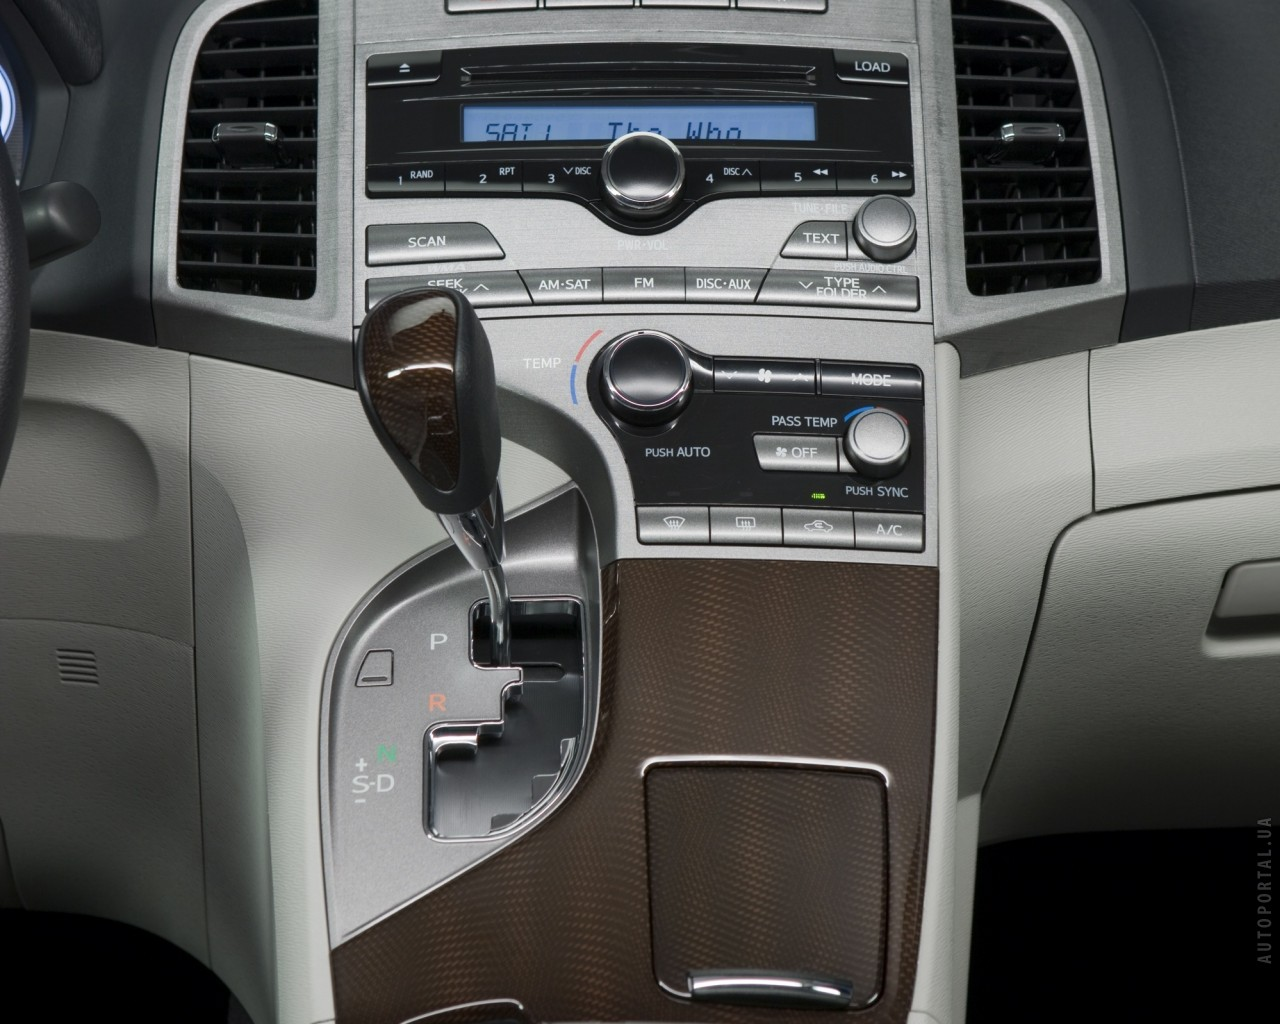 2012 Toyota Venza Middle Console.